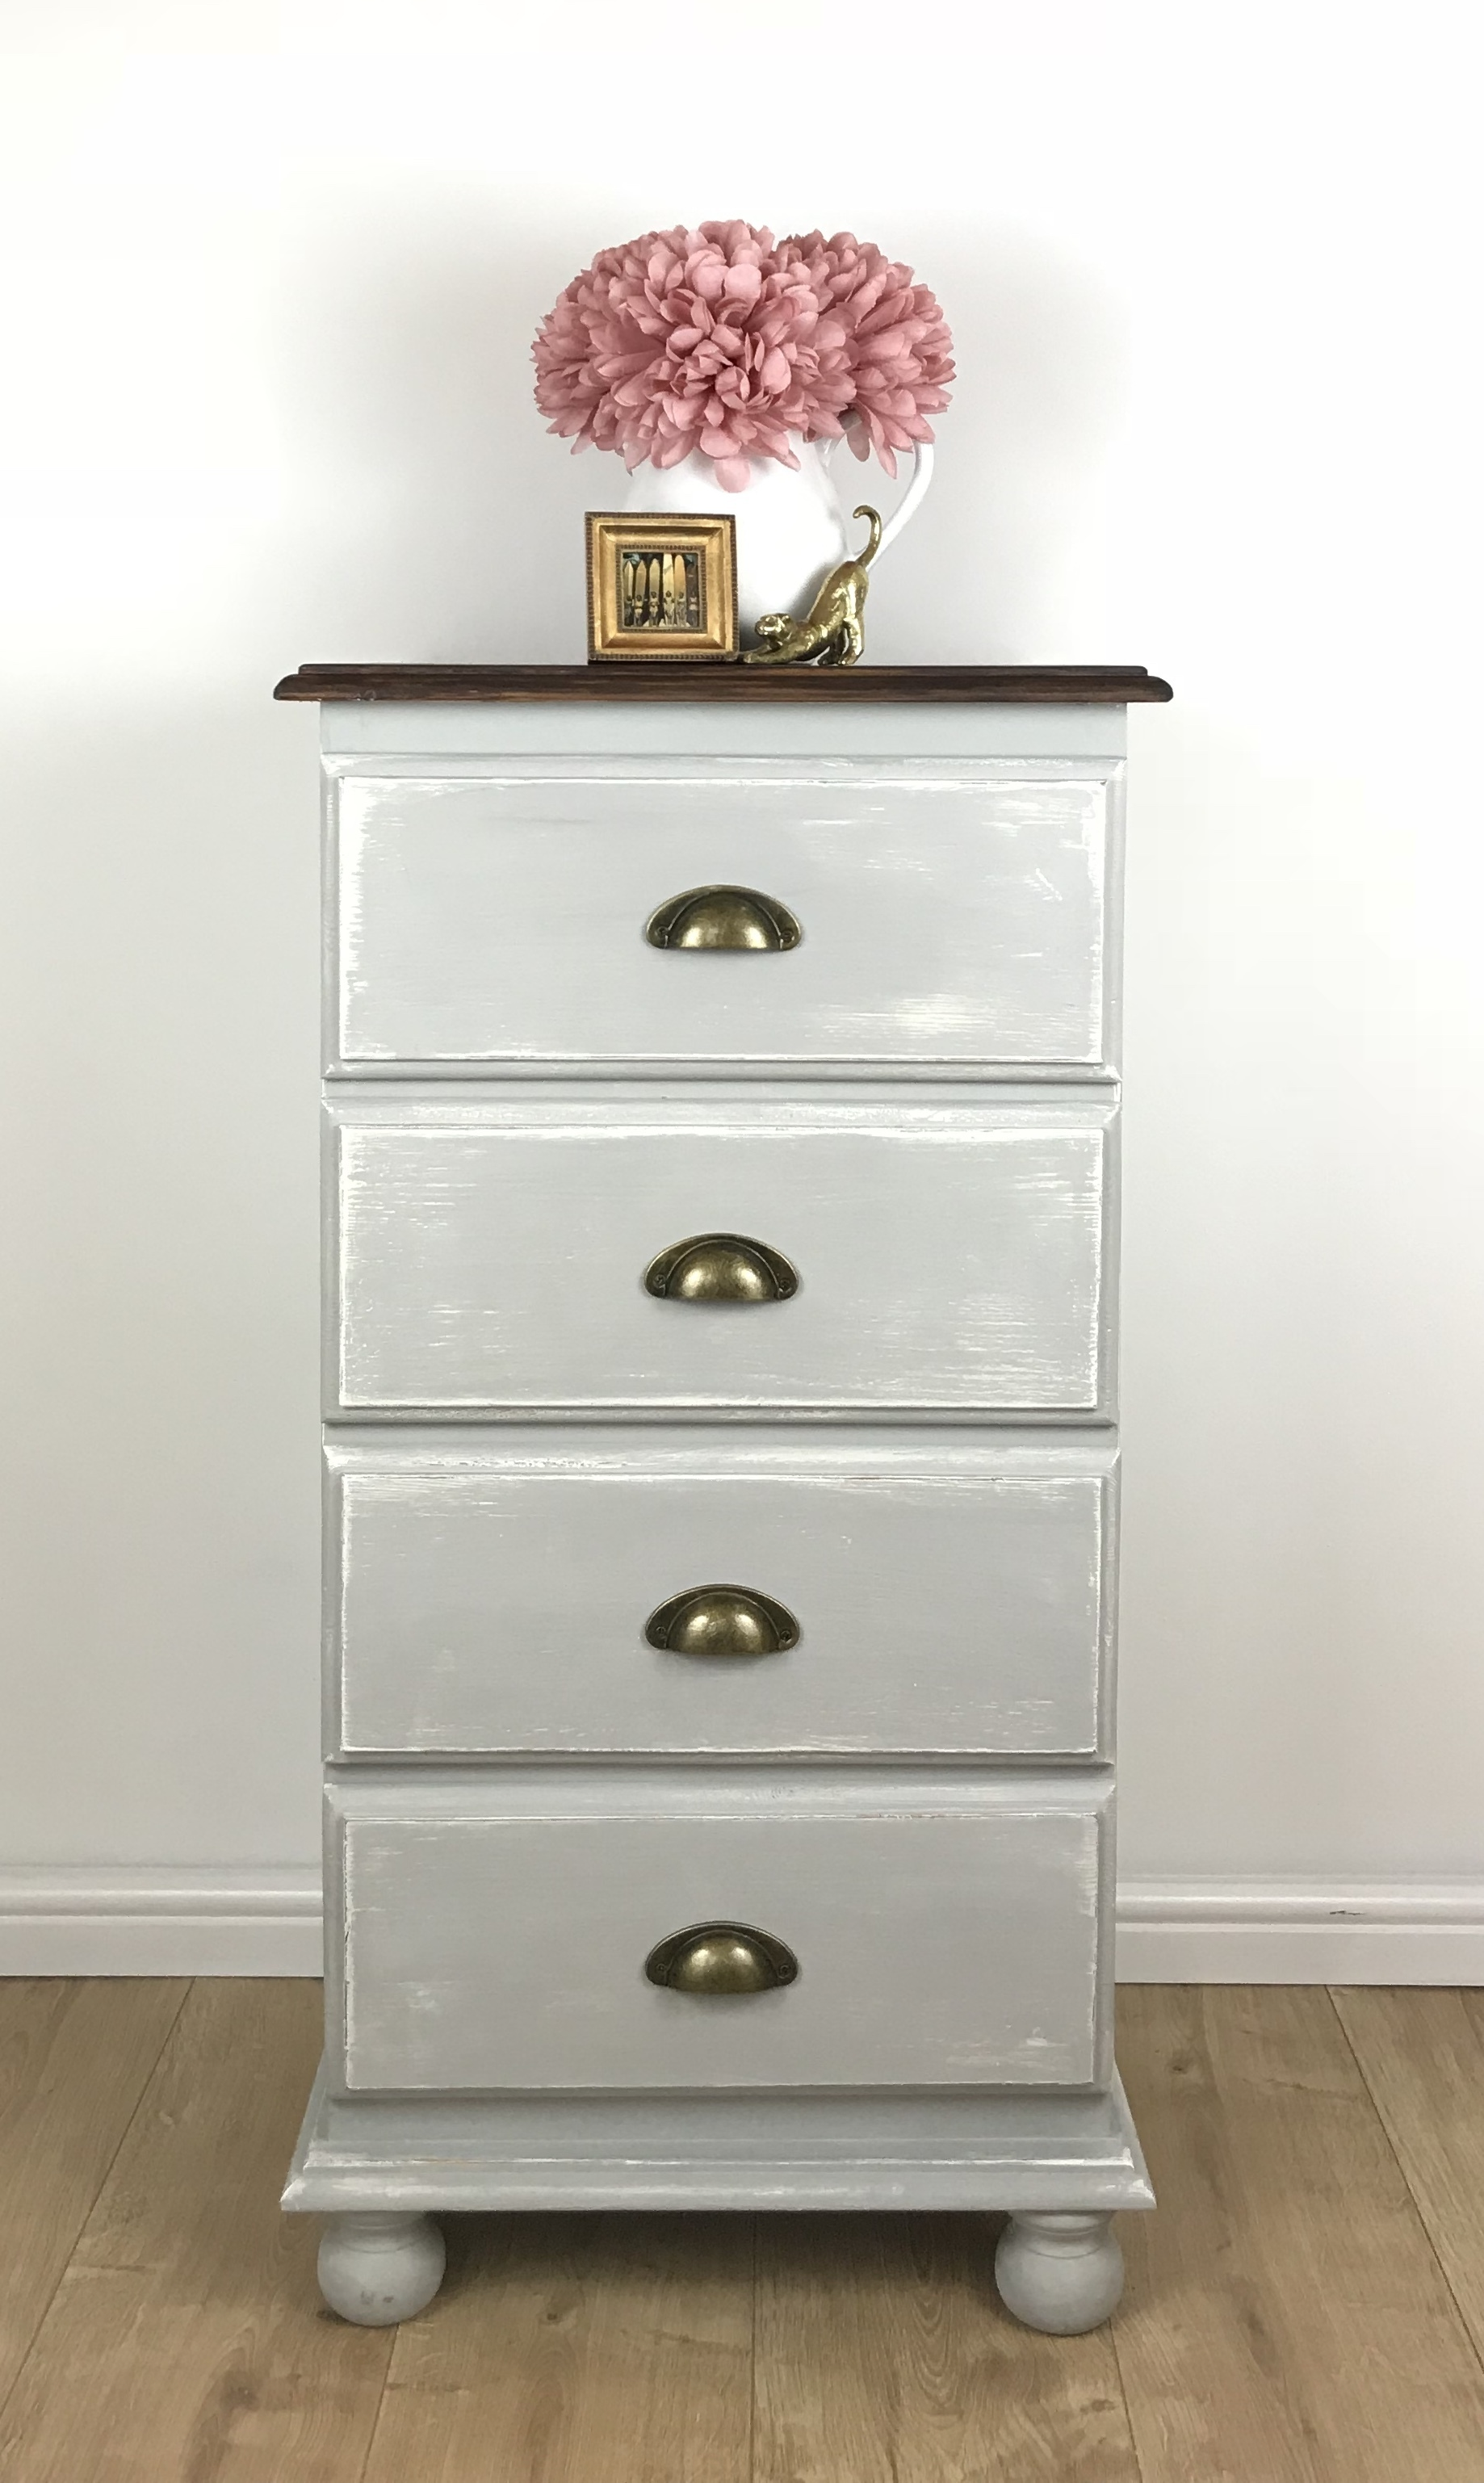 Buy White Tall Chest Of Drawers Tallboy 6 Drawer Cabinet Dresser Bedroom Storage White Tall Chest Bedroom Storage Chest Dresser Decor